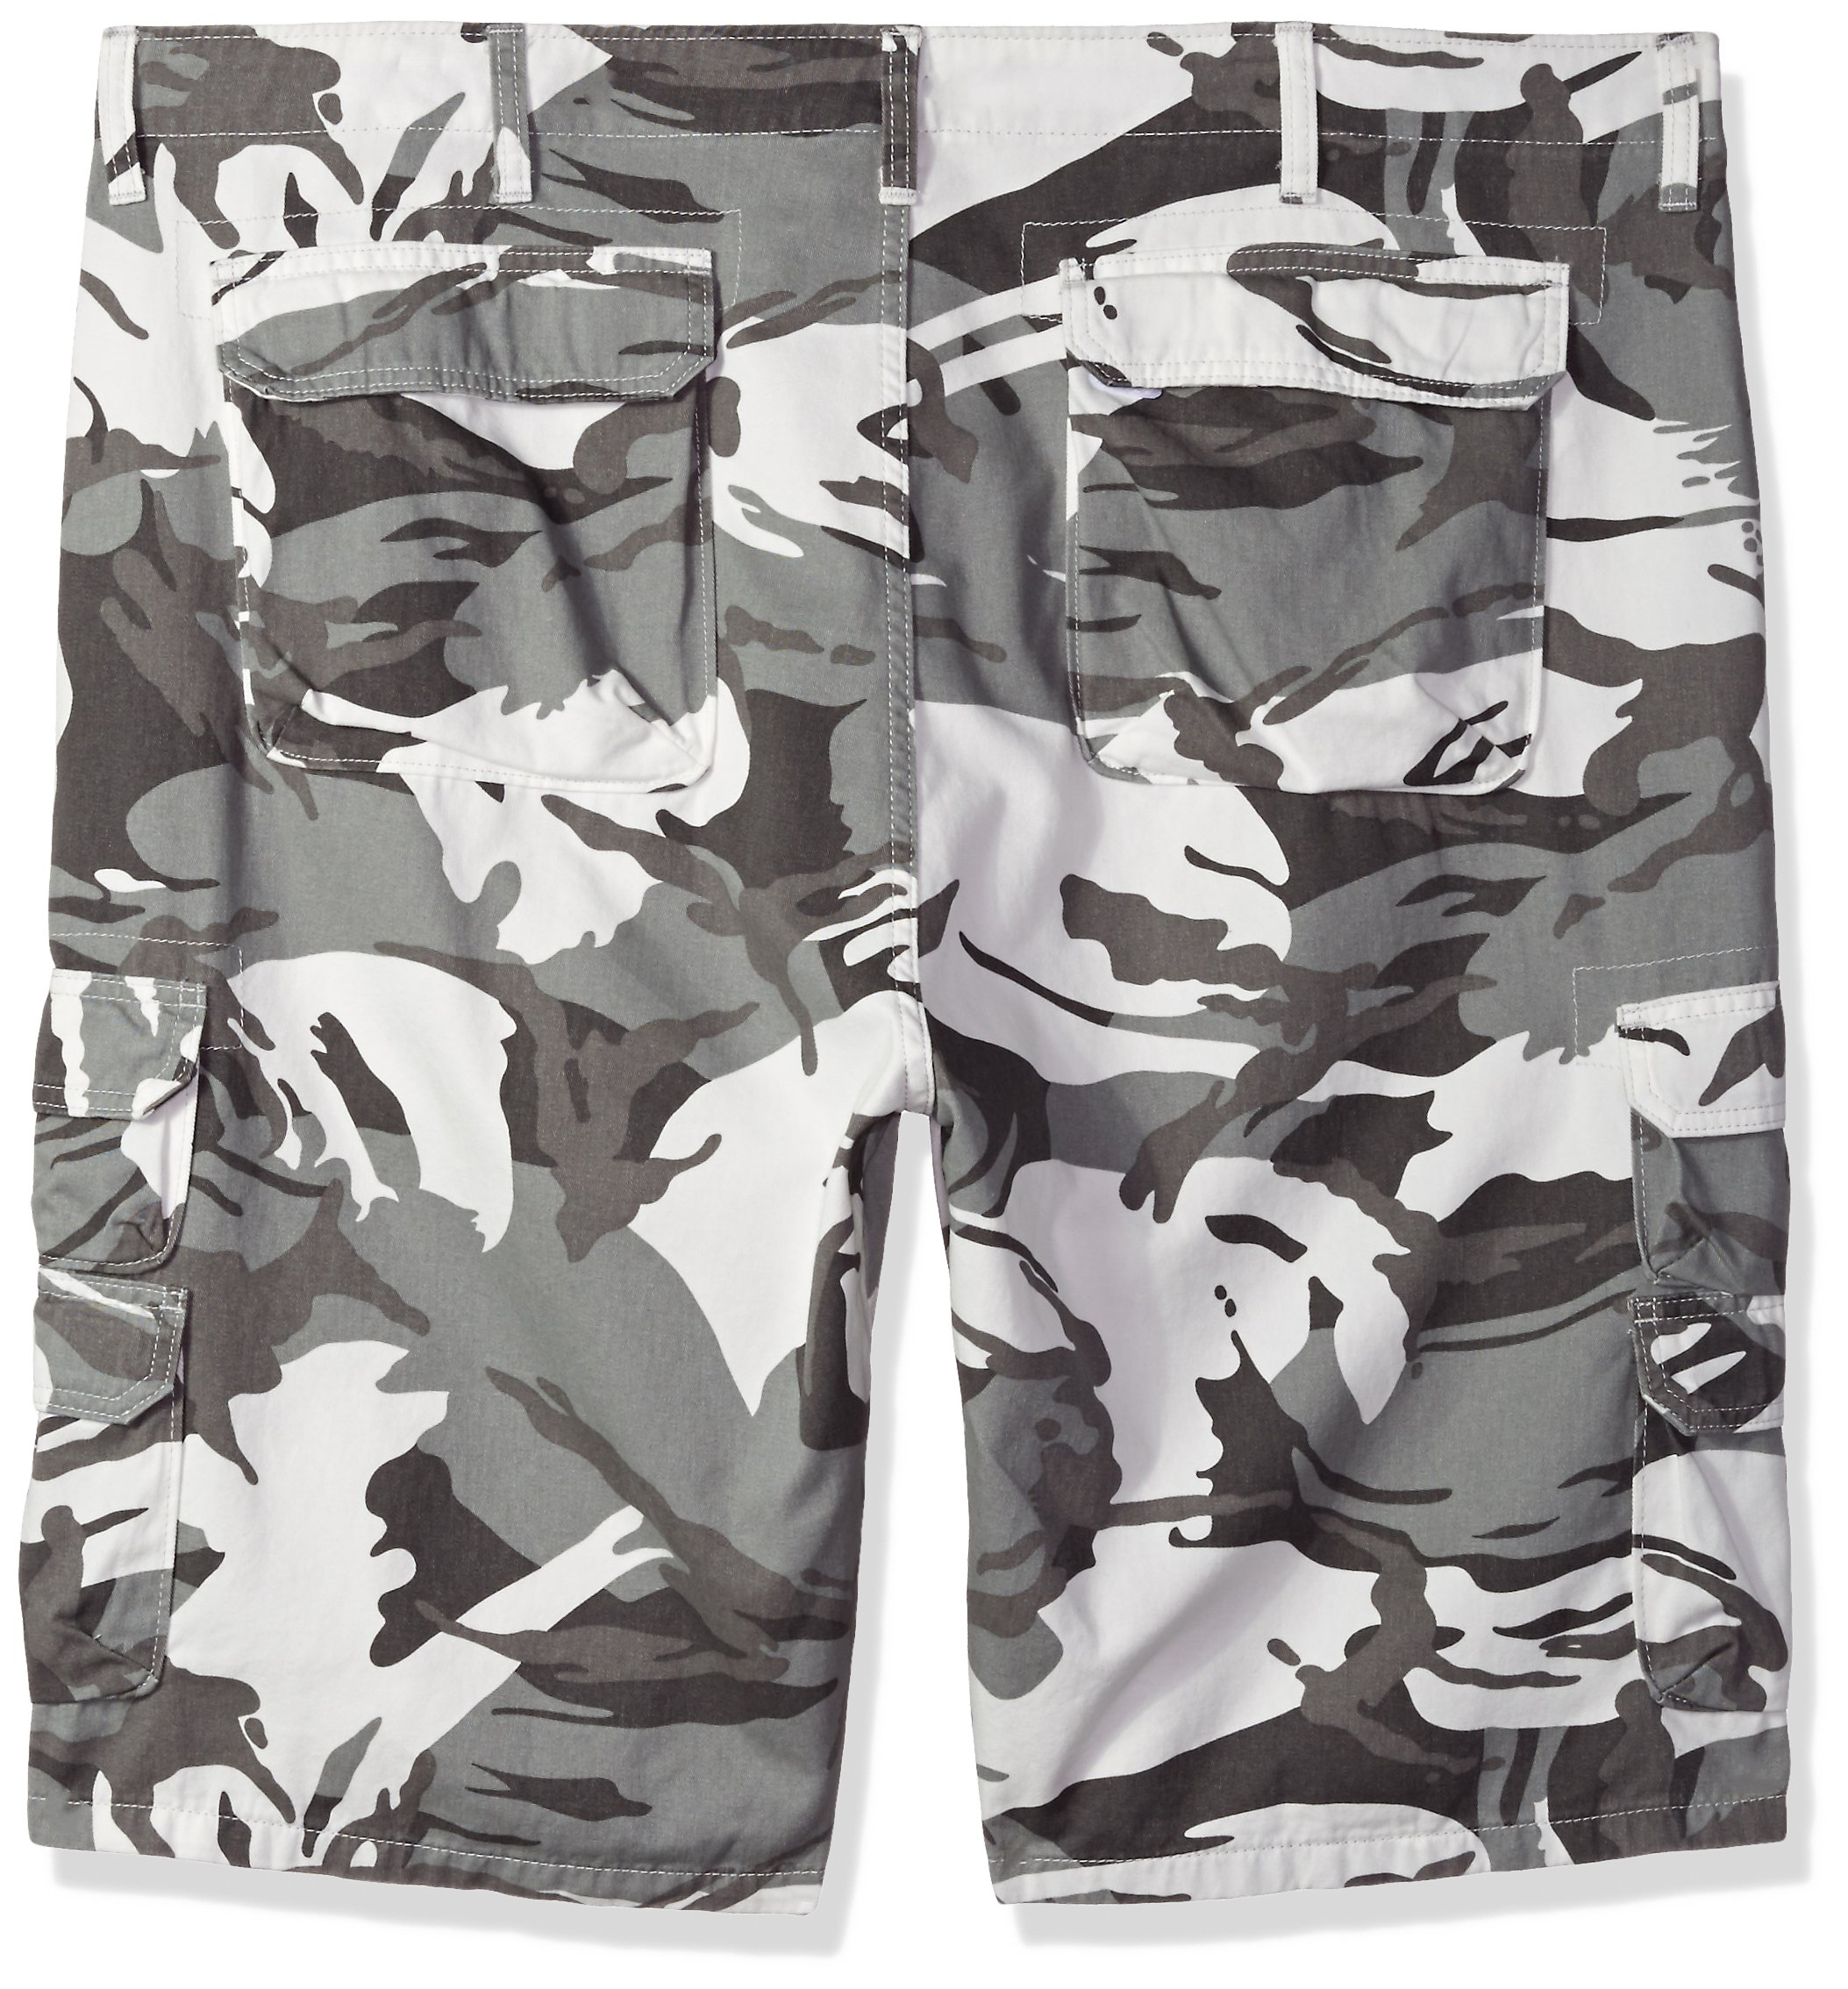 Wrangler Authentics Men's Big and Tall Premium Relaxed Fit Twill Cargo Short, White Camo, 44 by Wrangler (Image #2)